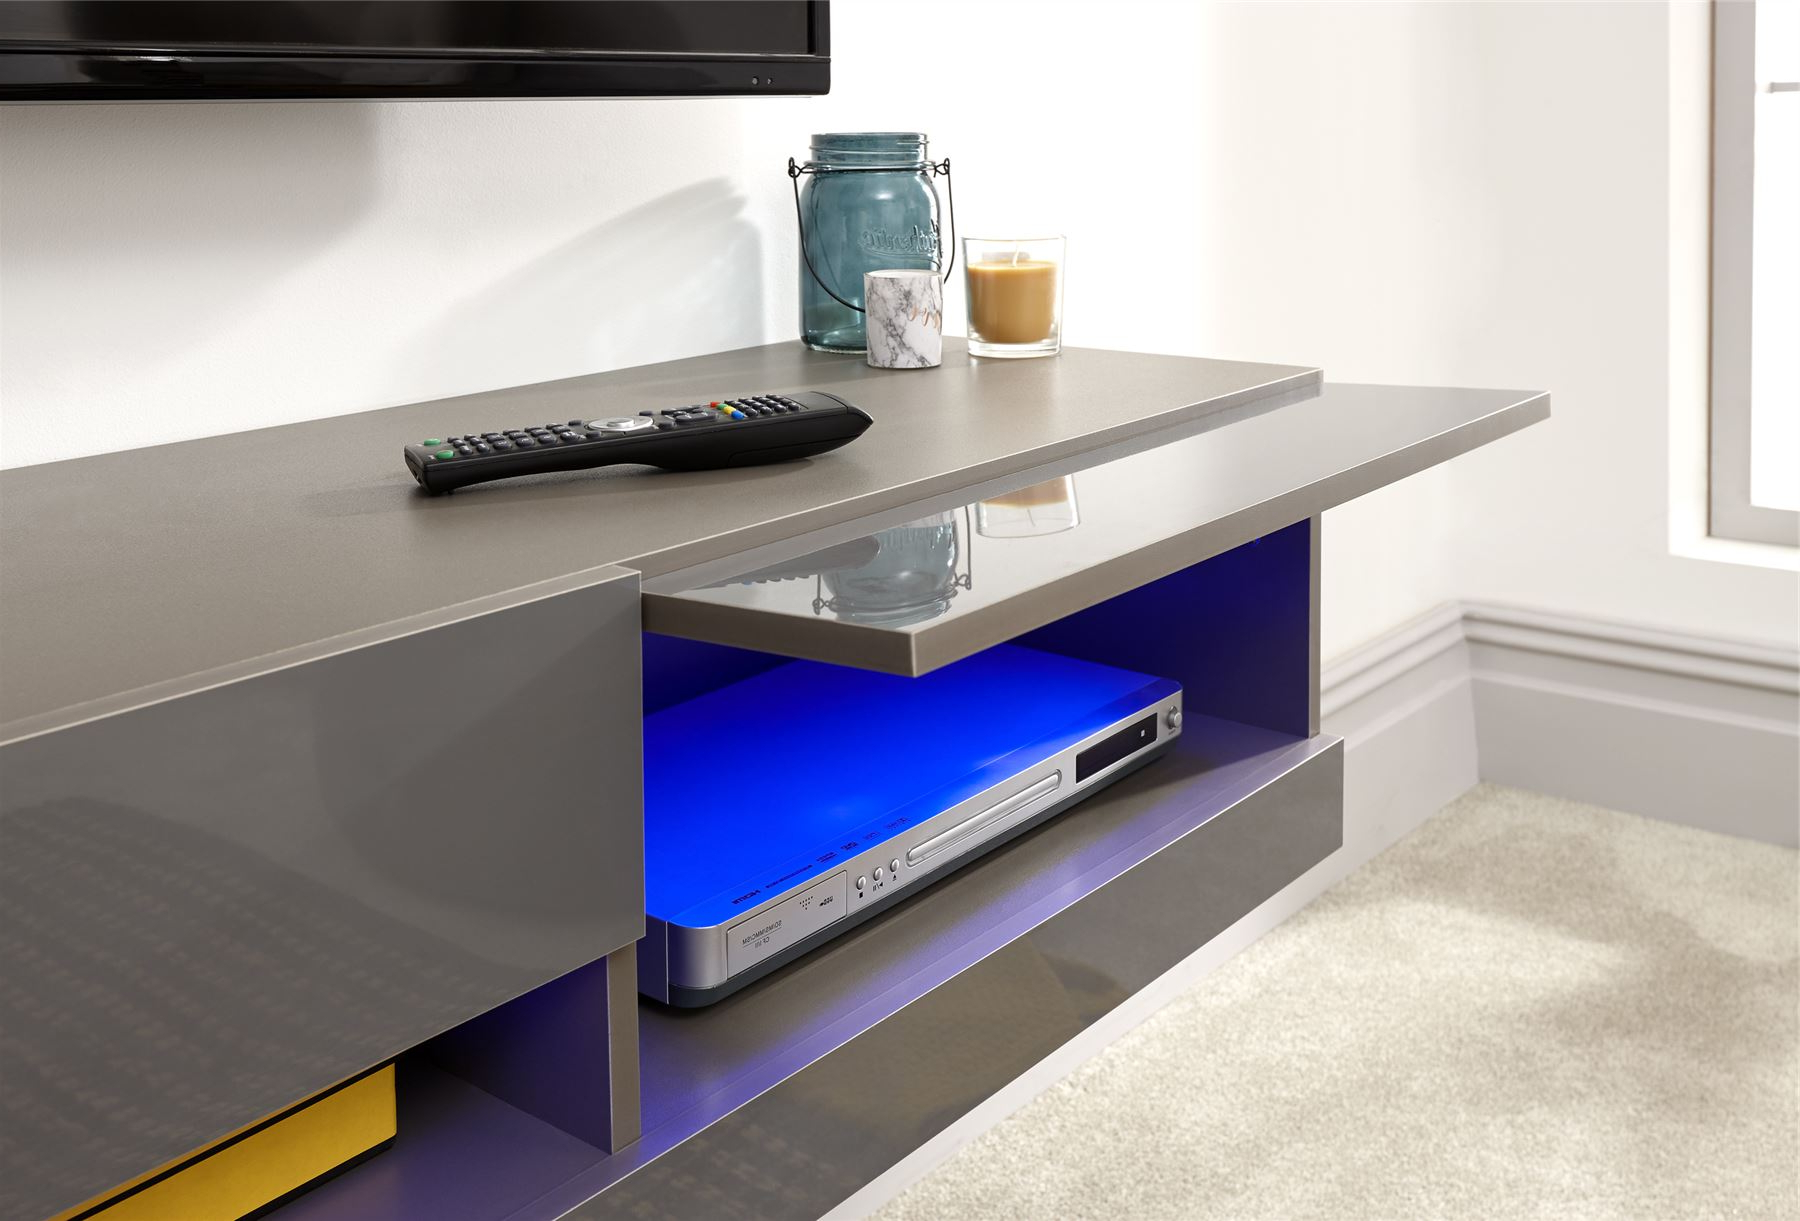 Galicia 180cm Led Wide Wall Tv Unit Stands Inside Recent Galicia 120cm 150cm 180cm Wall Tv Unit Stand W/ Led Lcd (View 2 of 10)